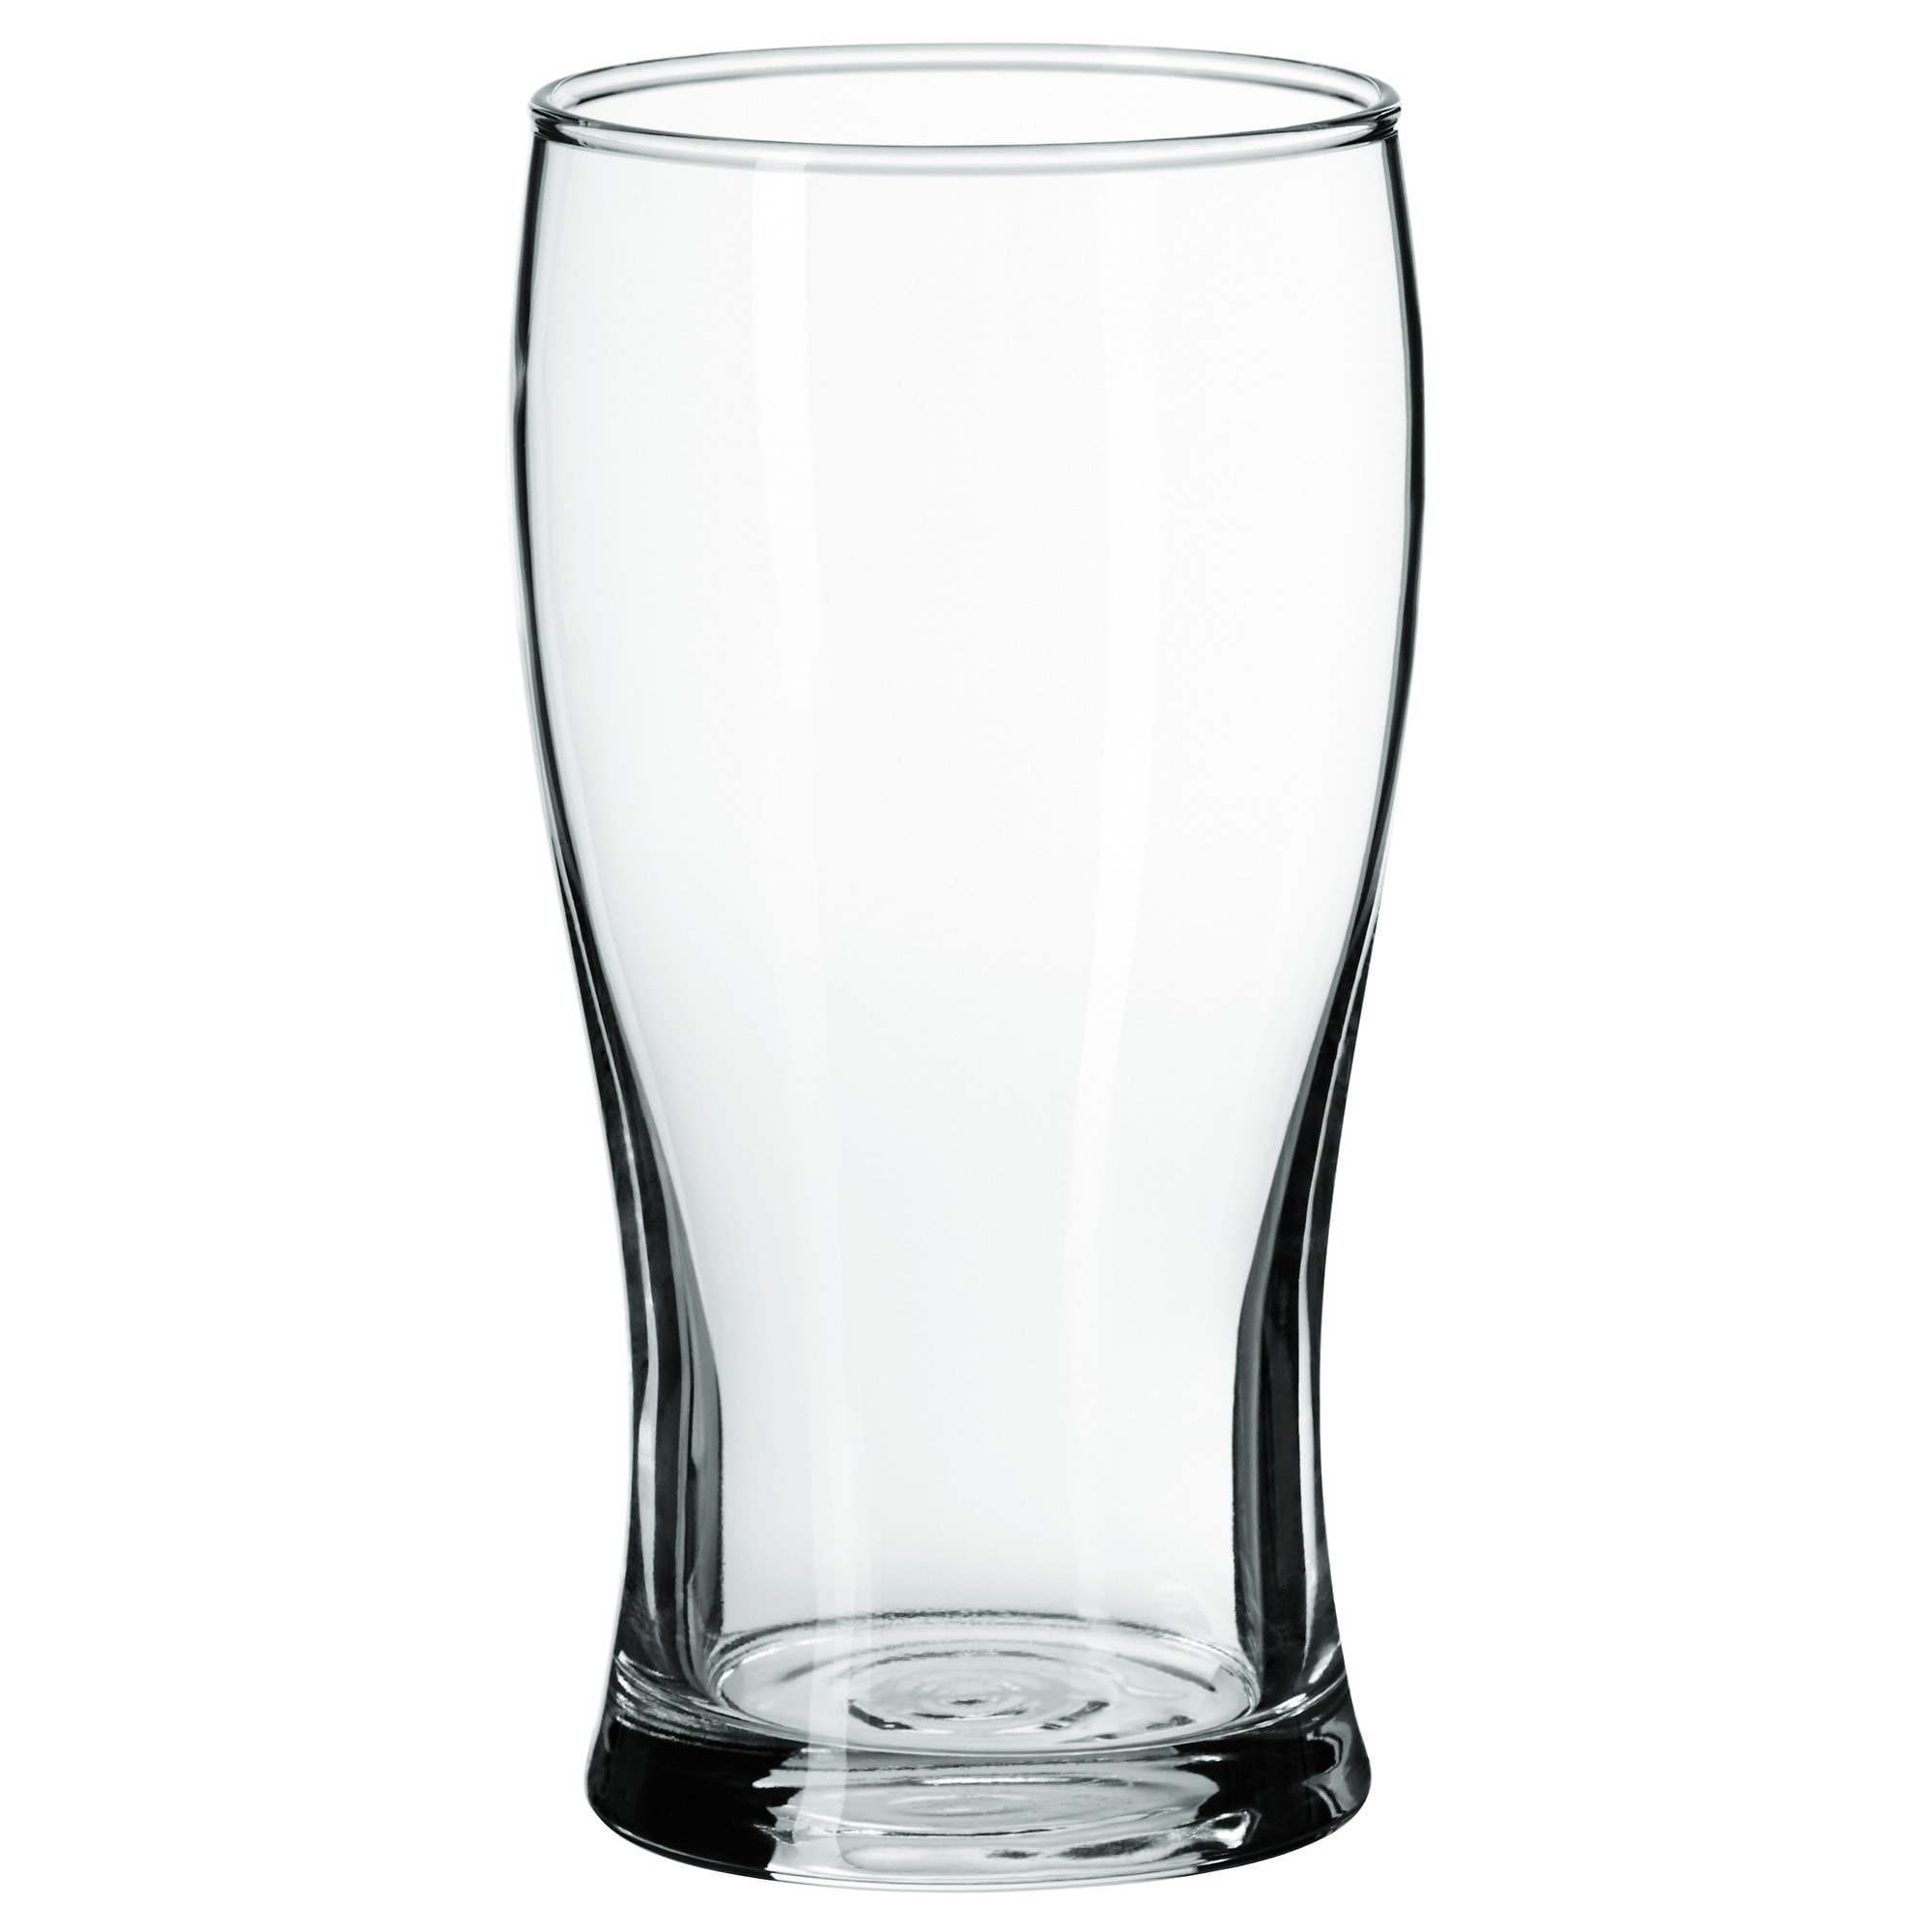 LODRÄT Beer Glass   IKEA